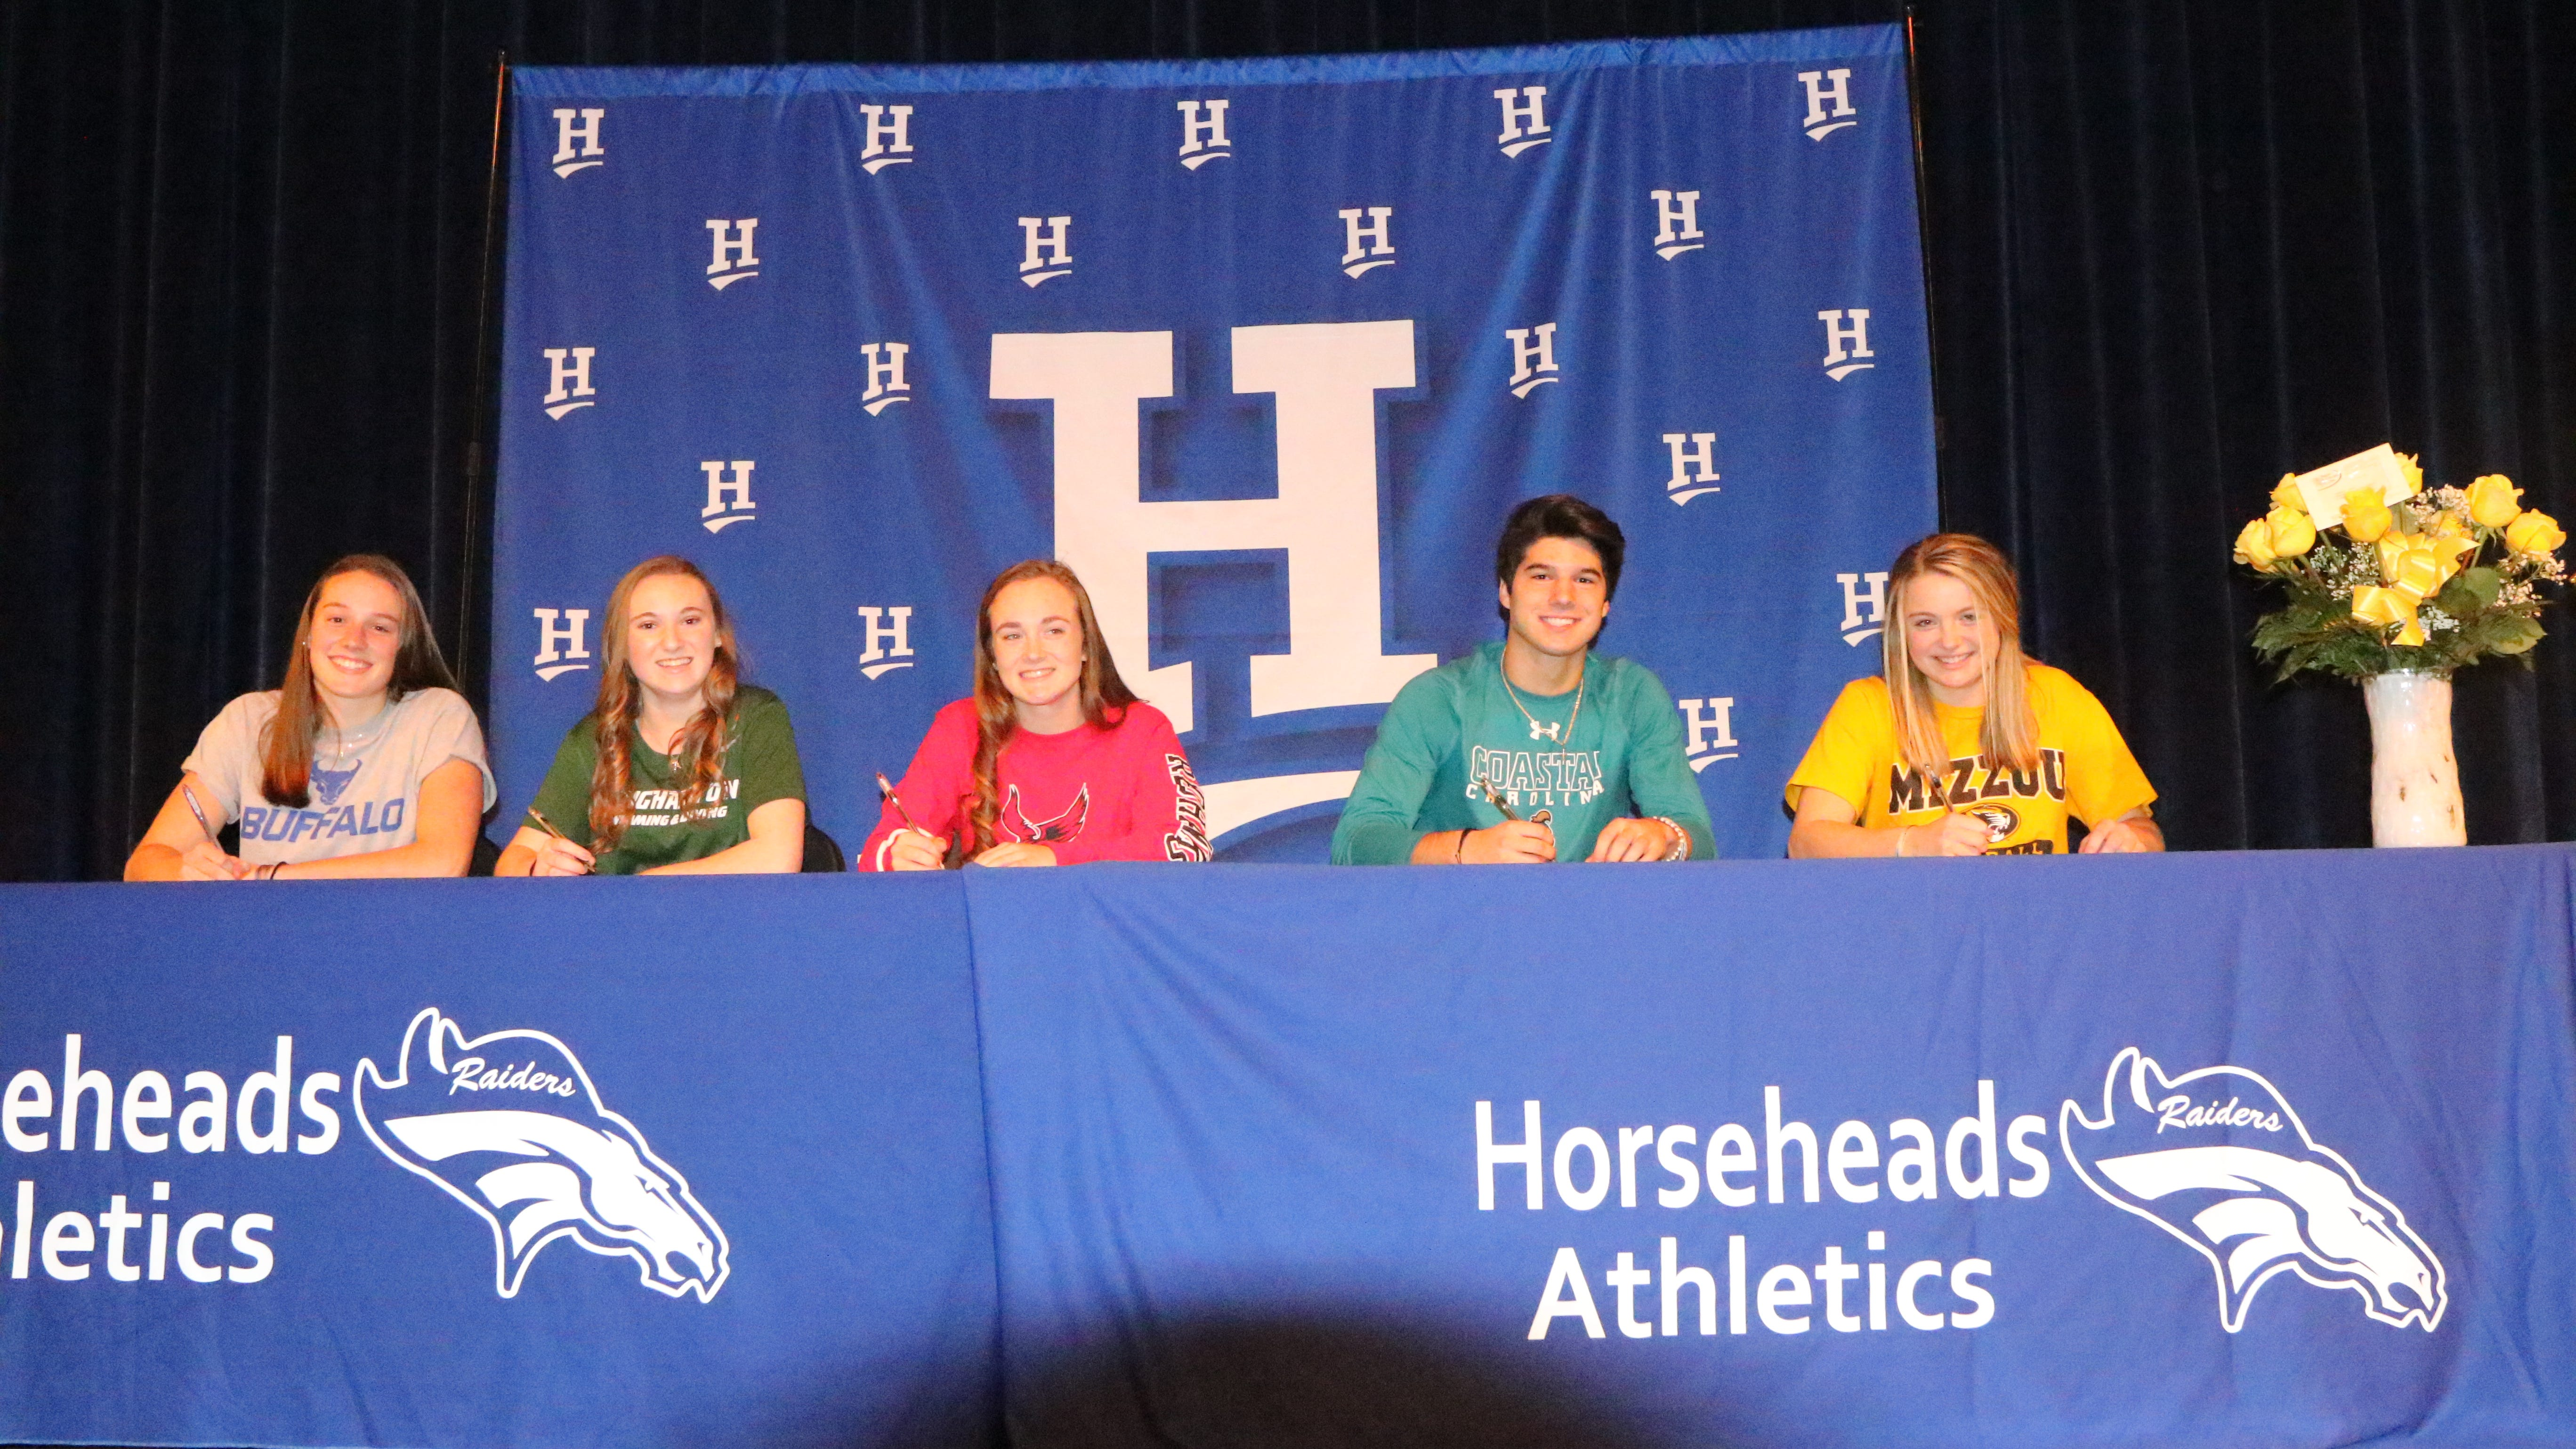 Horseheads athletes, from left, Maddy Rogan, Chloe Peterson, Skyler Roberts, Mike Limoncelli and Kendal Cook participate in a signing ceremony Nov. 14, 2018 at the Horseheads High School auditorium.